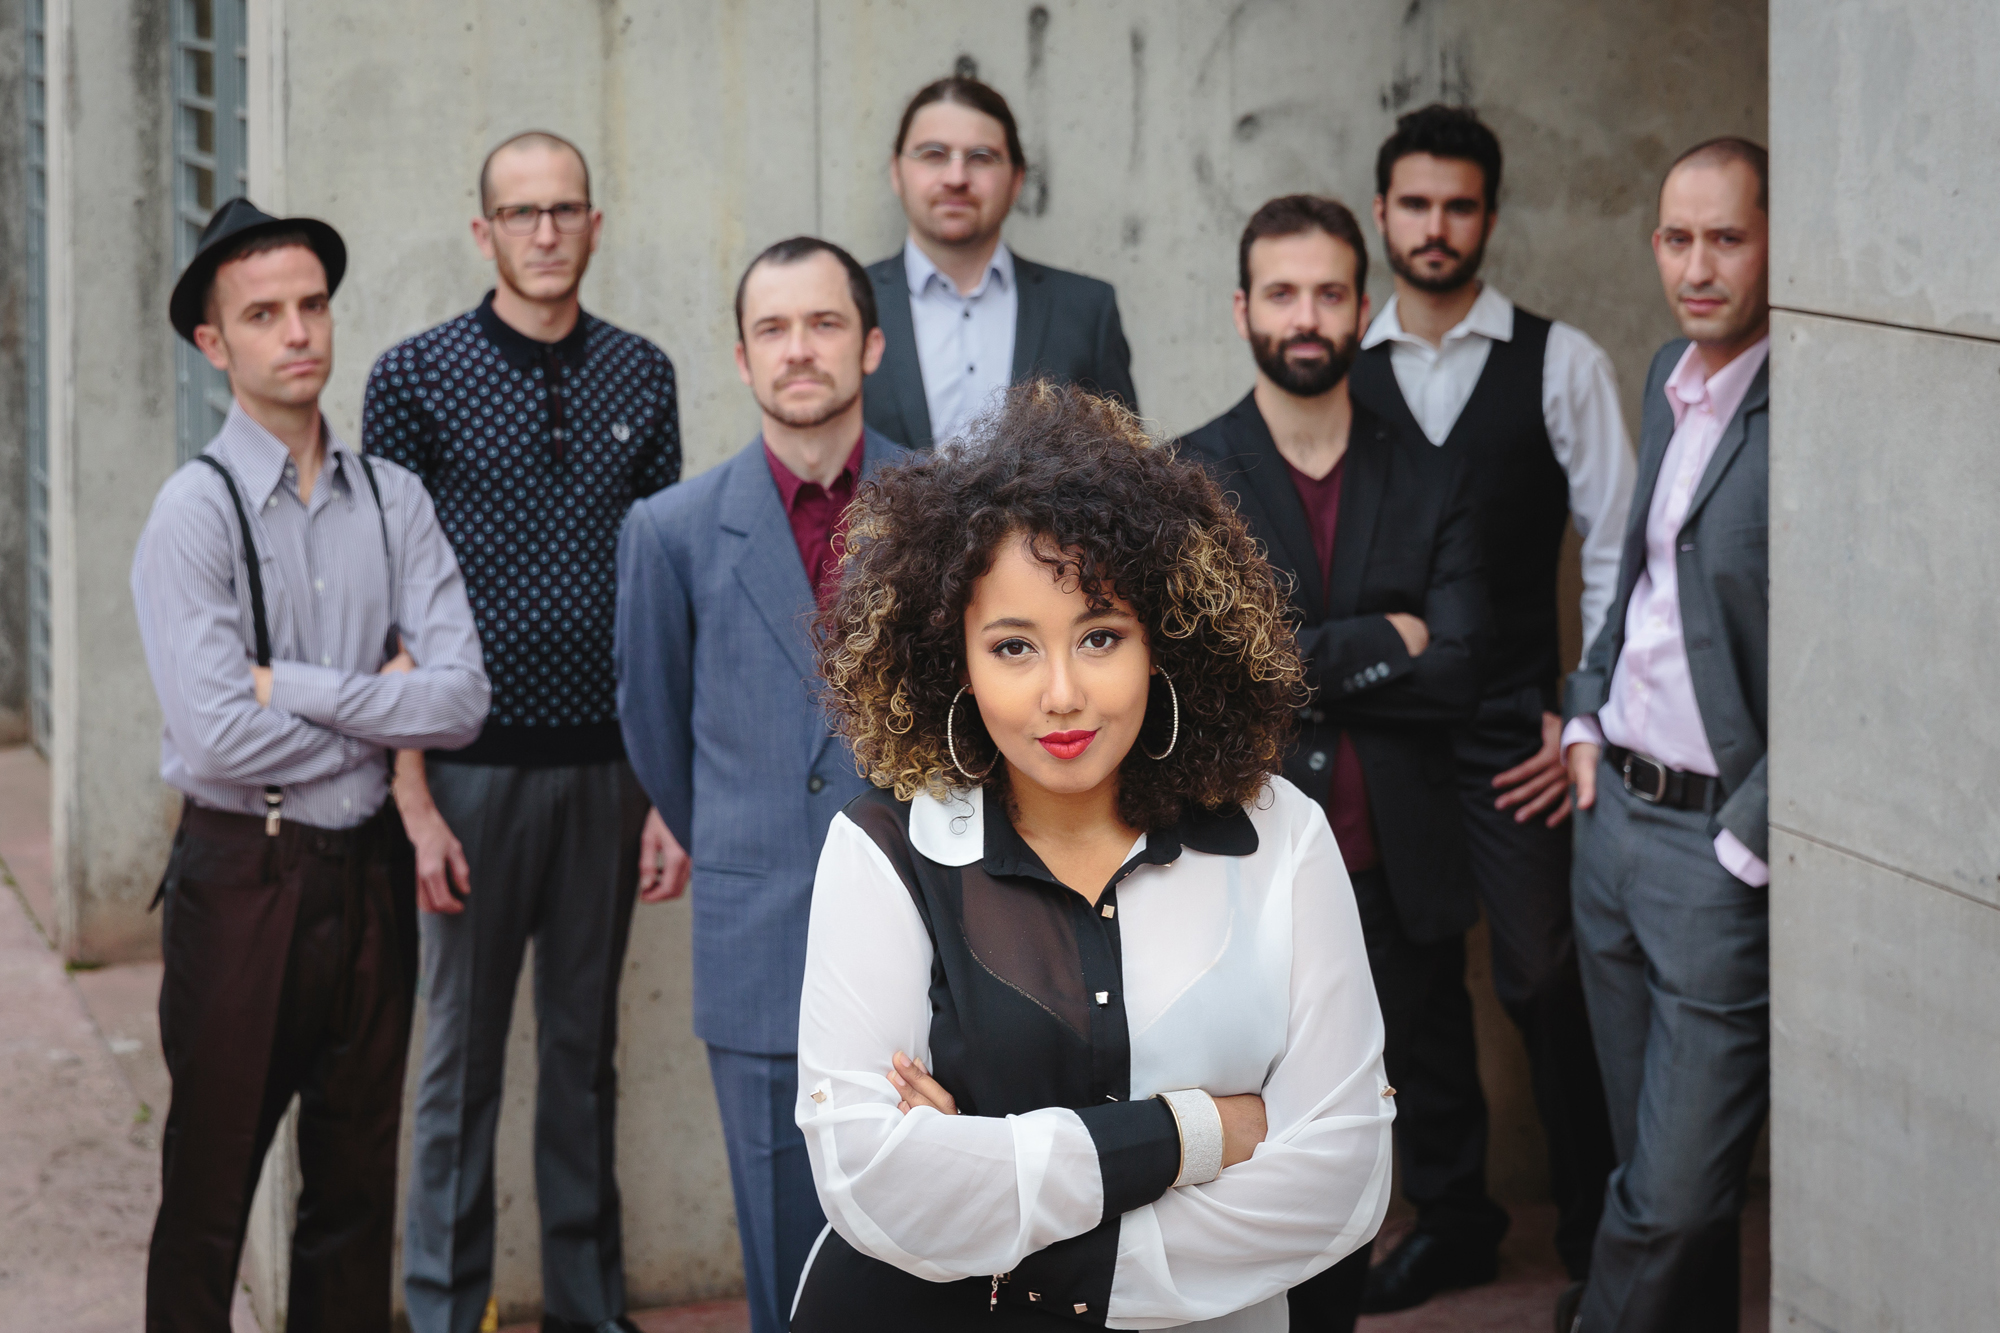 Atenea Carter & The Mighty Might